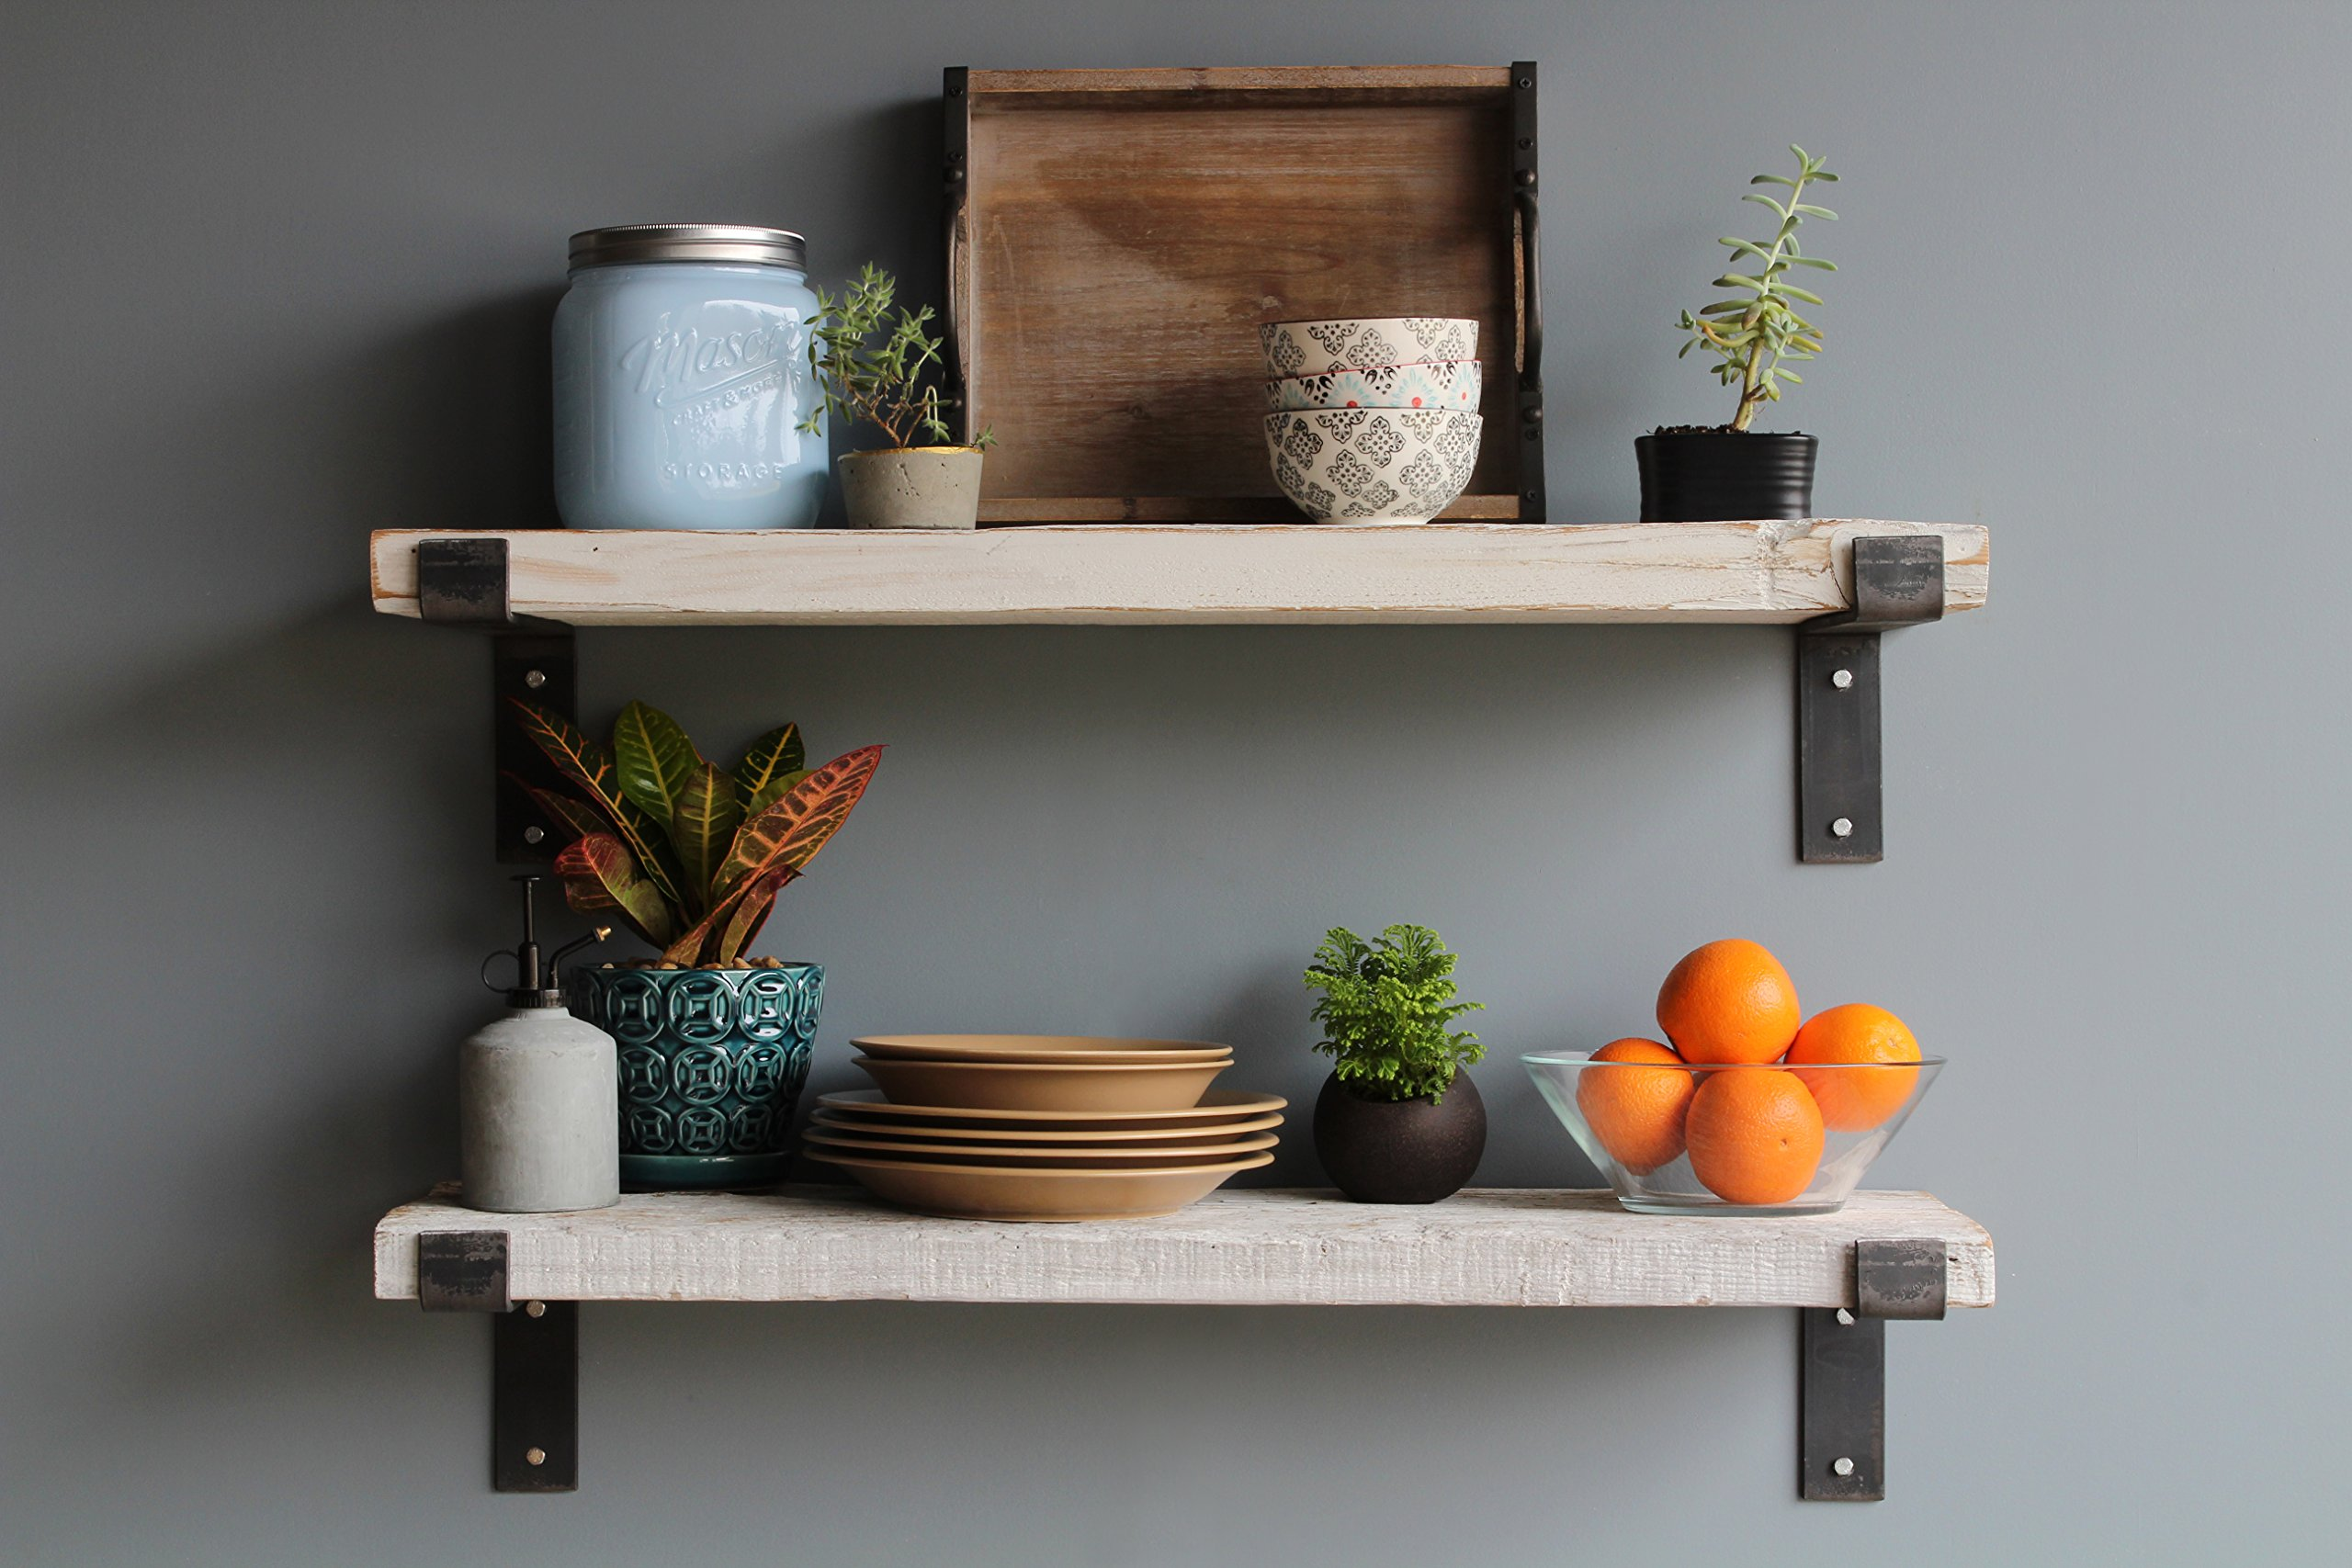 Urban Legacy Reclaimed Barn Wood Shelves | Amish Handcrafted in Lancaster, PA Rustic, Industrial, with Raw Metal Brackets | Set of 2-36 inches long, 10 inches deep, 2 inches thick by (White Washed)